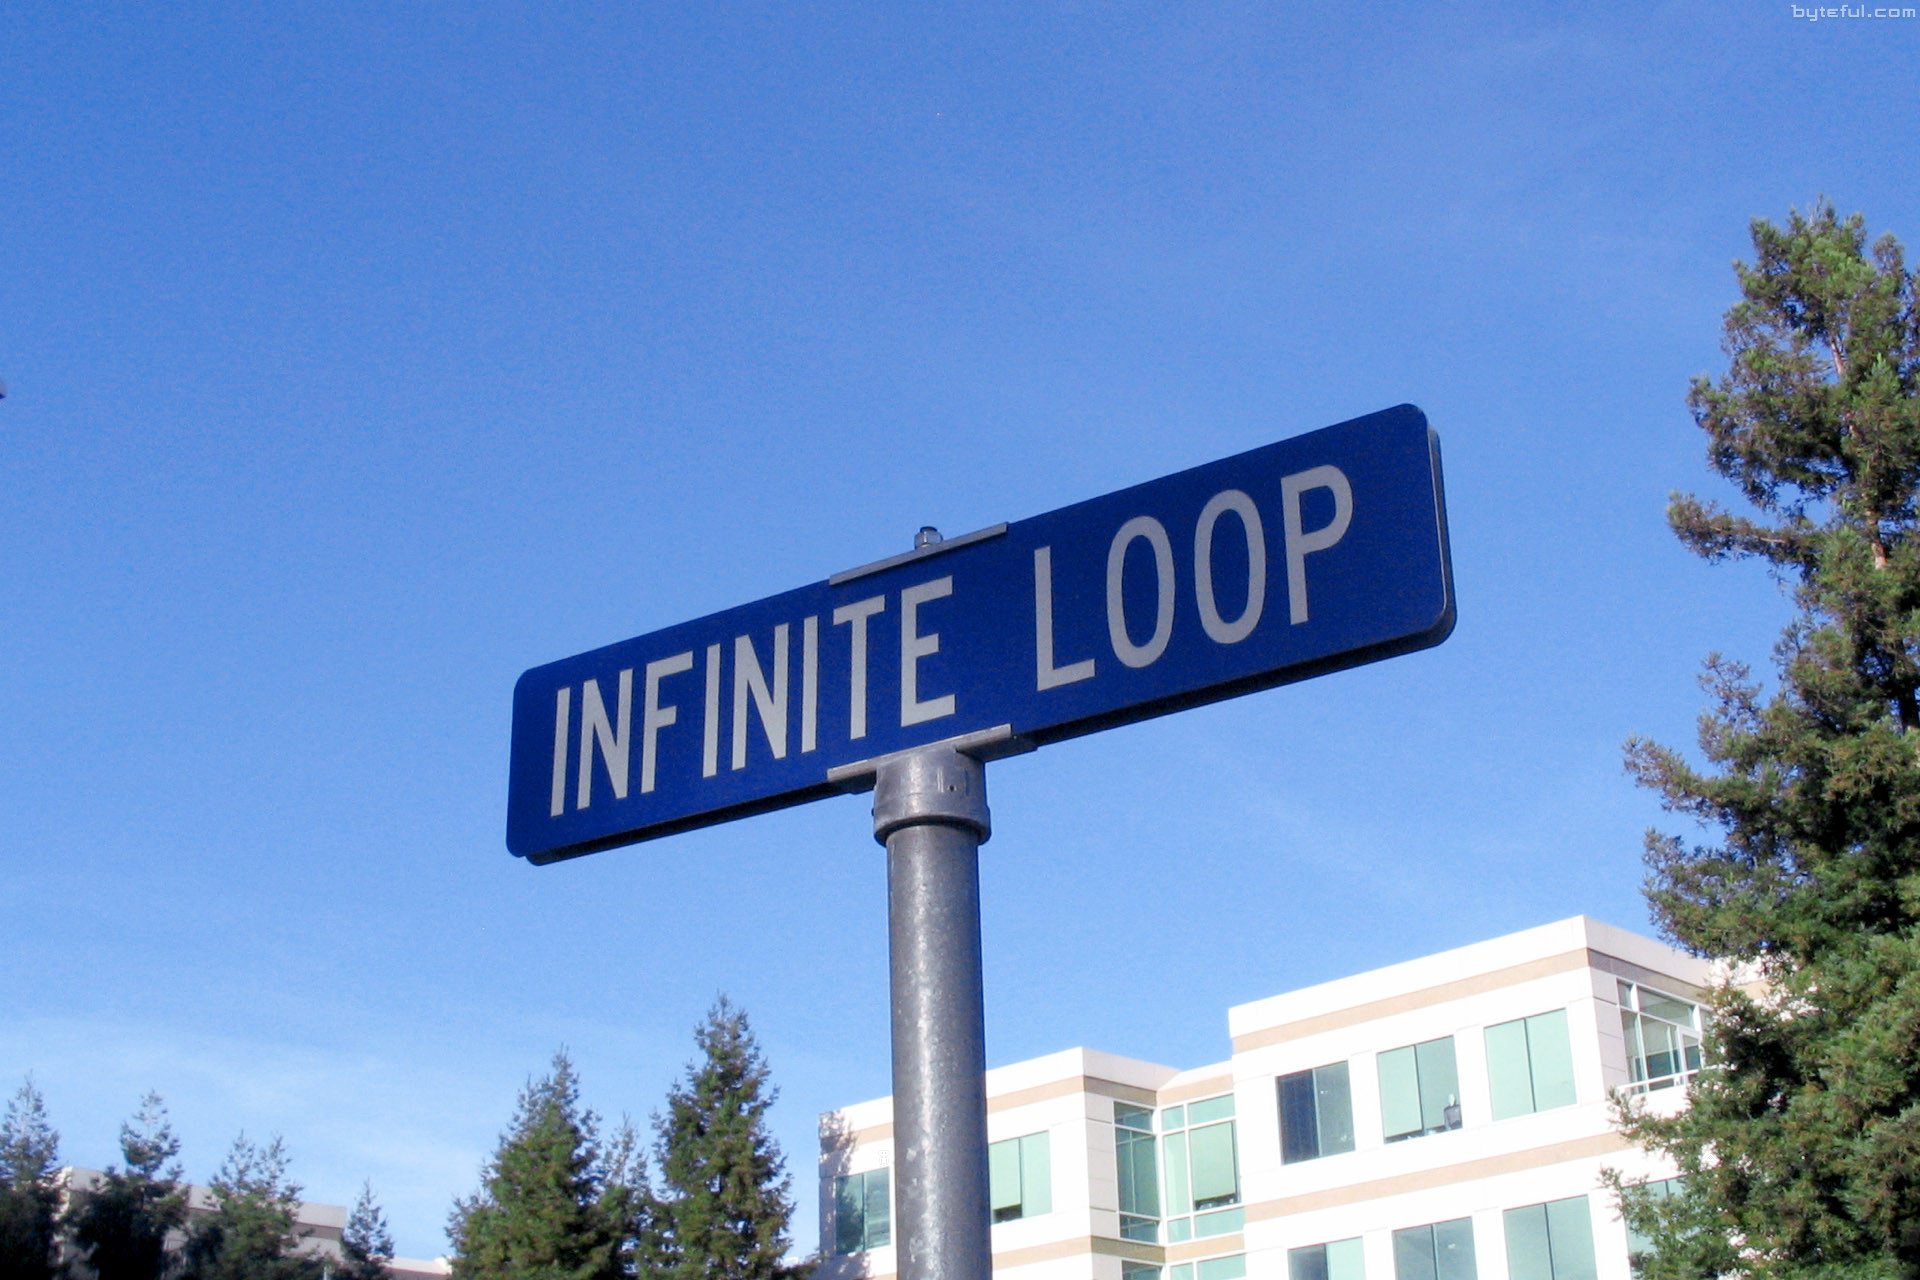 One Infinite Loop